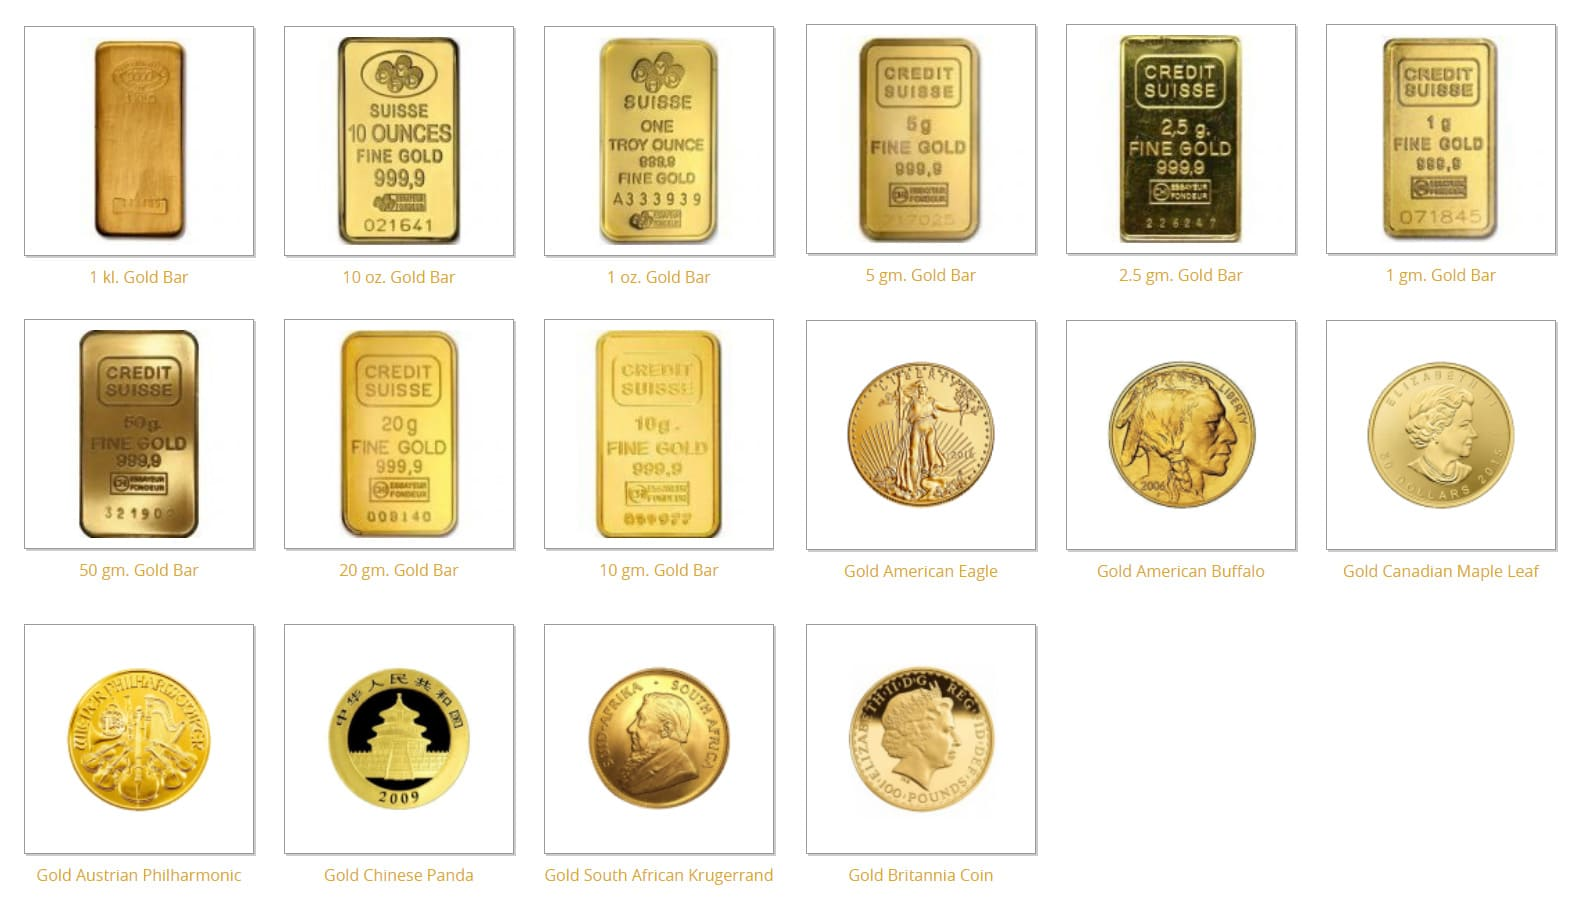 IRA-Approved Coins and Bars - Gold